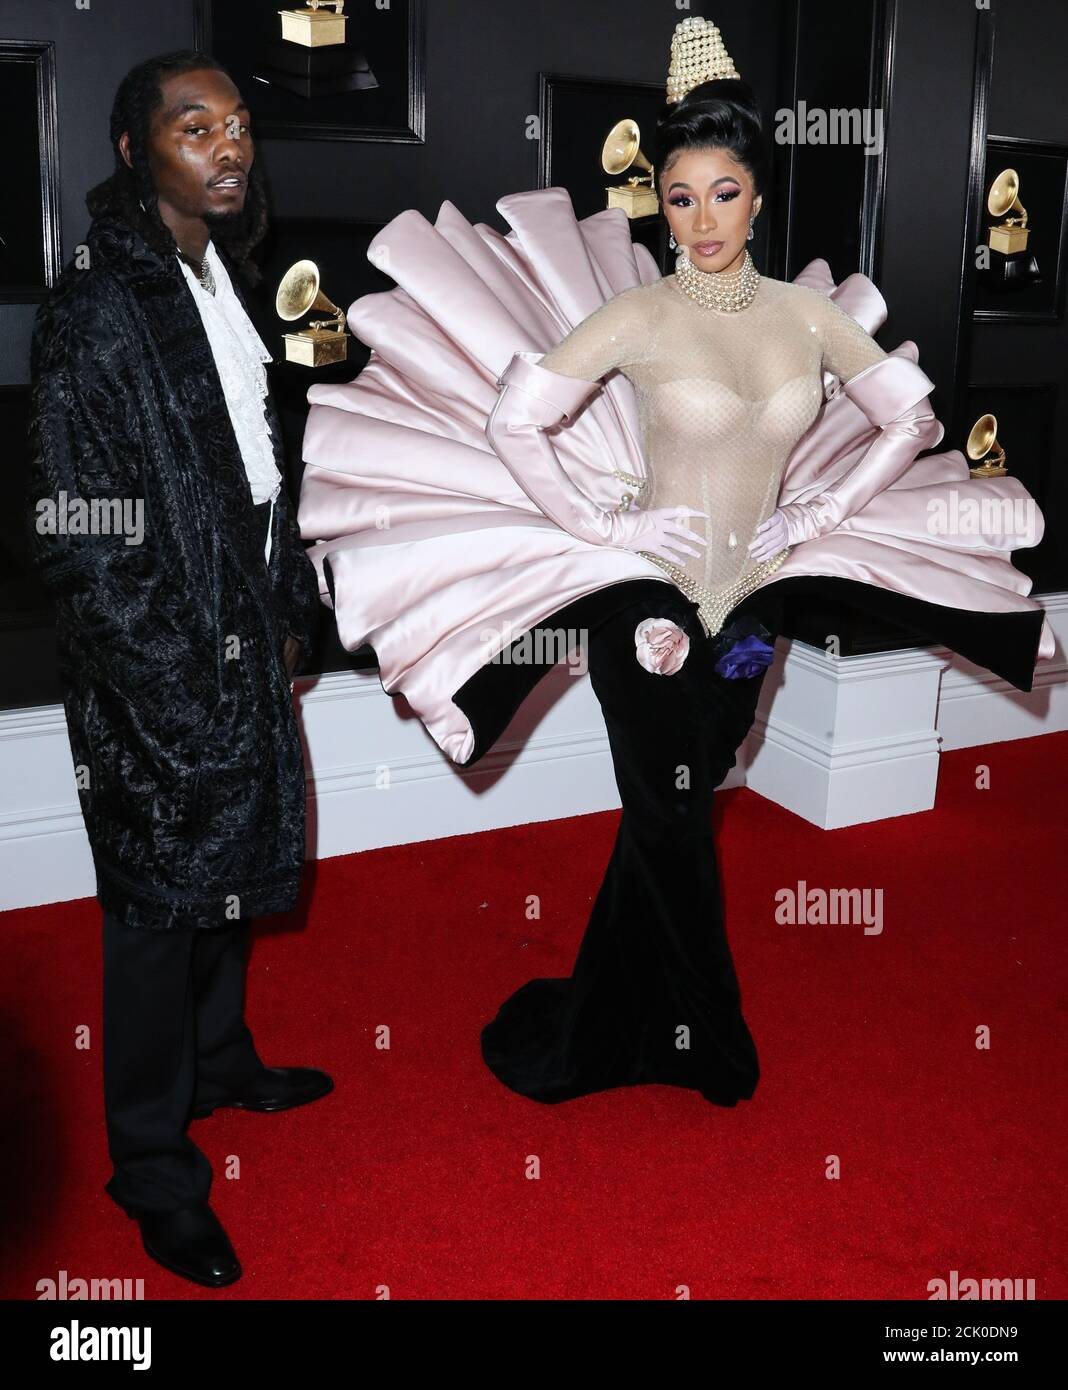 Los Angeles, United States. 15th Sep, 2020. (FILE) Cardi B Files for Divorce from Offset After 3 Years of Marriage. LOS ANGELES, CALIFORNIA, USA - FEBRUARY 10: Rapper Offset (Kiari Kendrell Cephus) and wife/rapper Cardi B (Belcalis Marlenis Almanzar) arrive at the 61st Annual GRAMMY Awards held at Staples Center on February 10, 2019 in Los Angeles, California, United States. (Photo by Xavier Collin/Image Press Agency) Credit: Image Press Agency/Alamy Live News Stock Photo